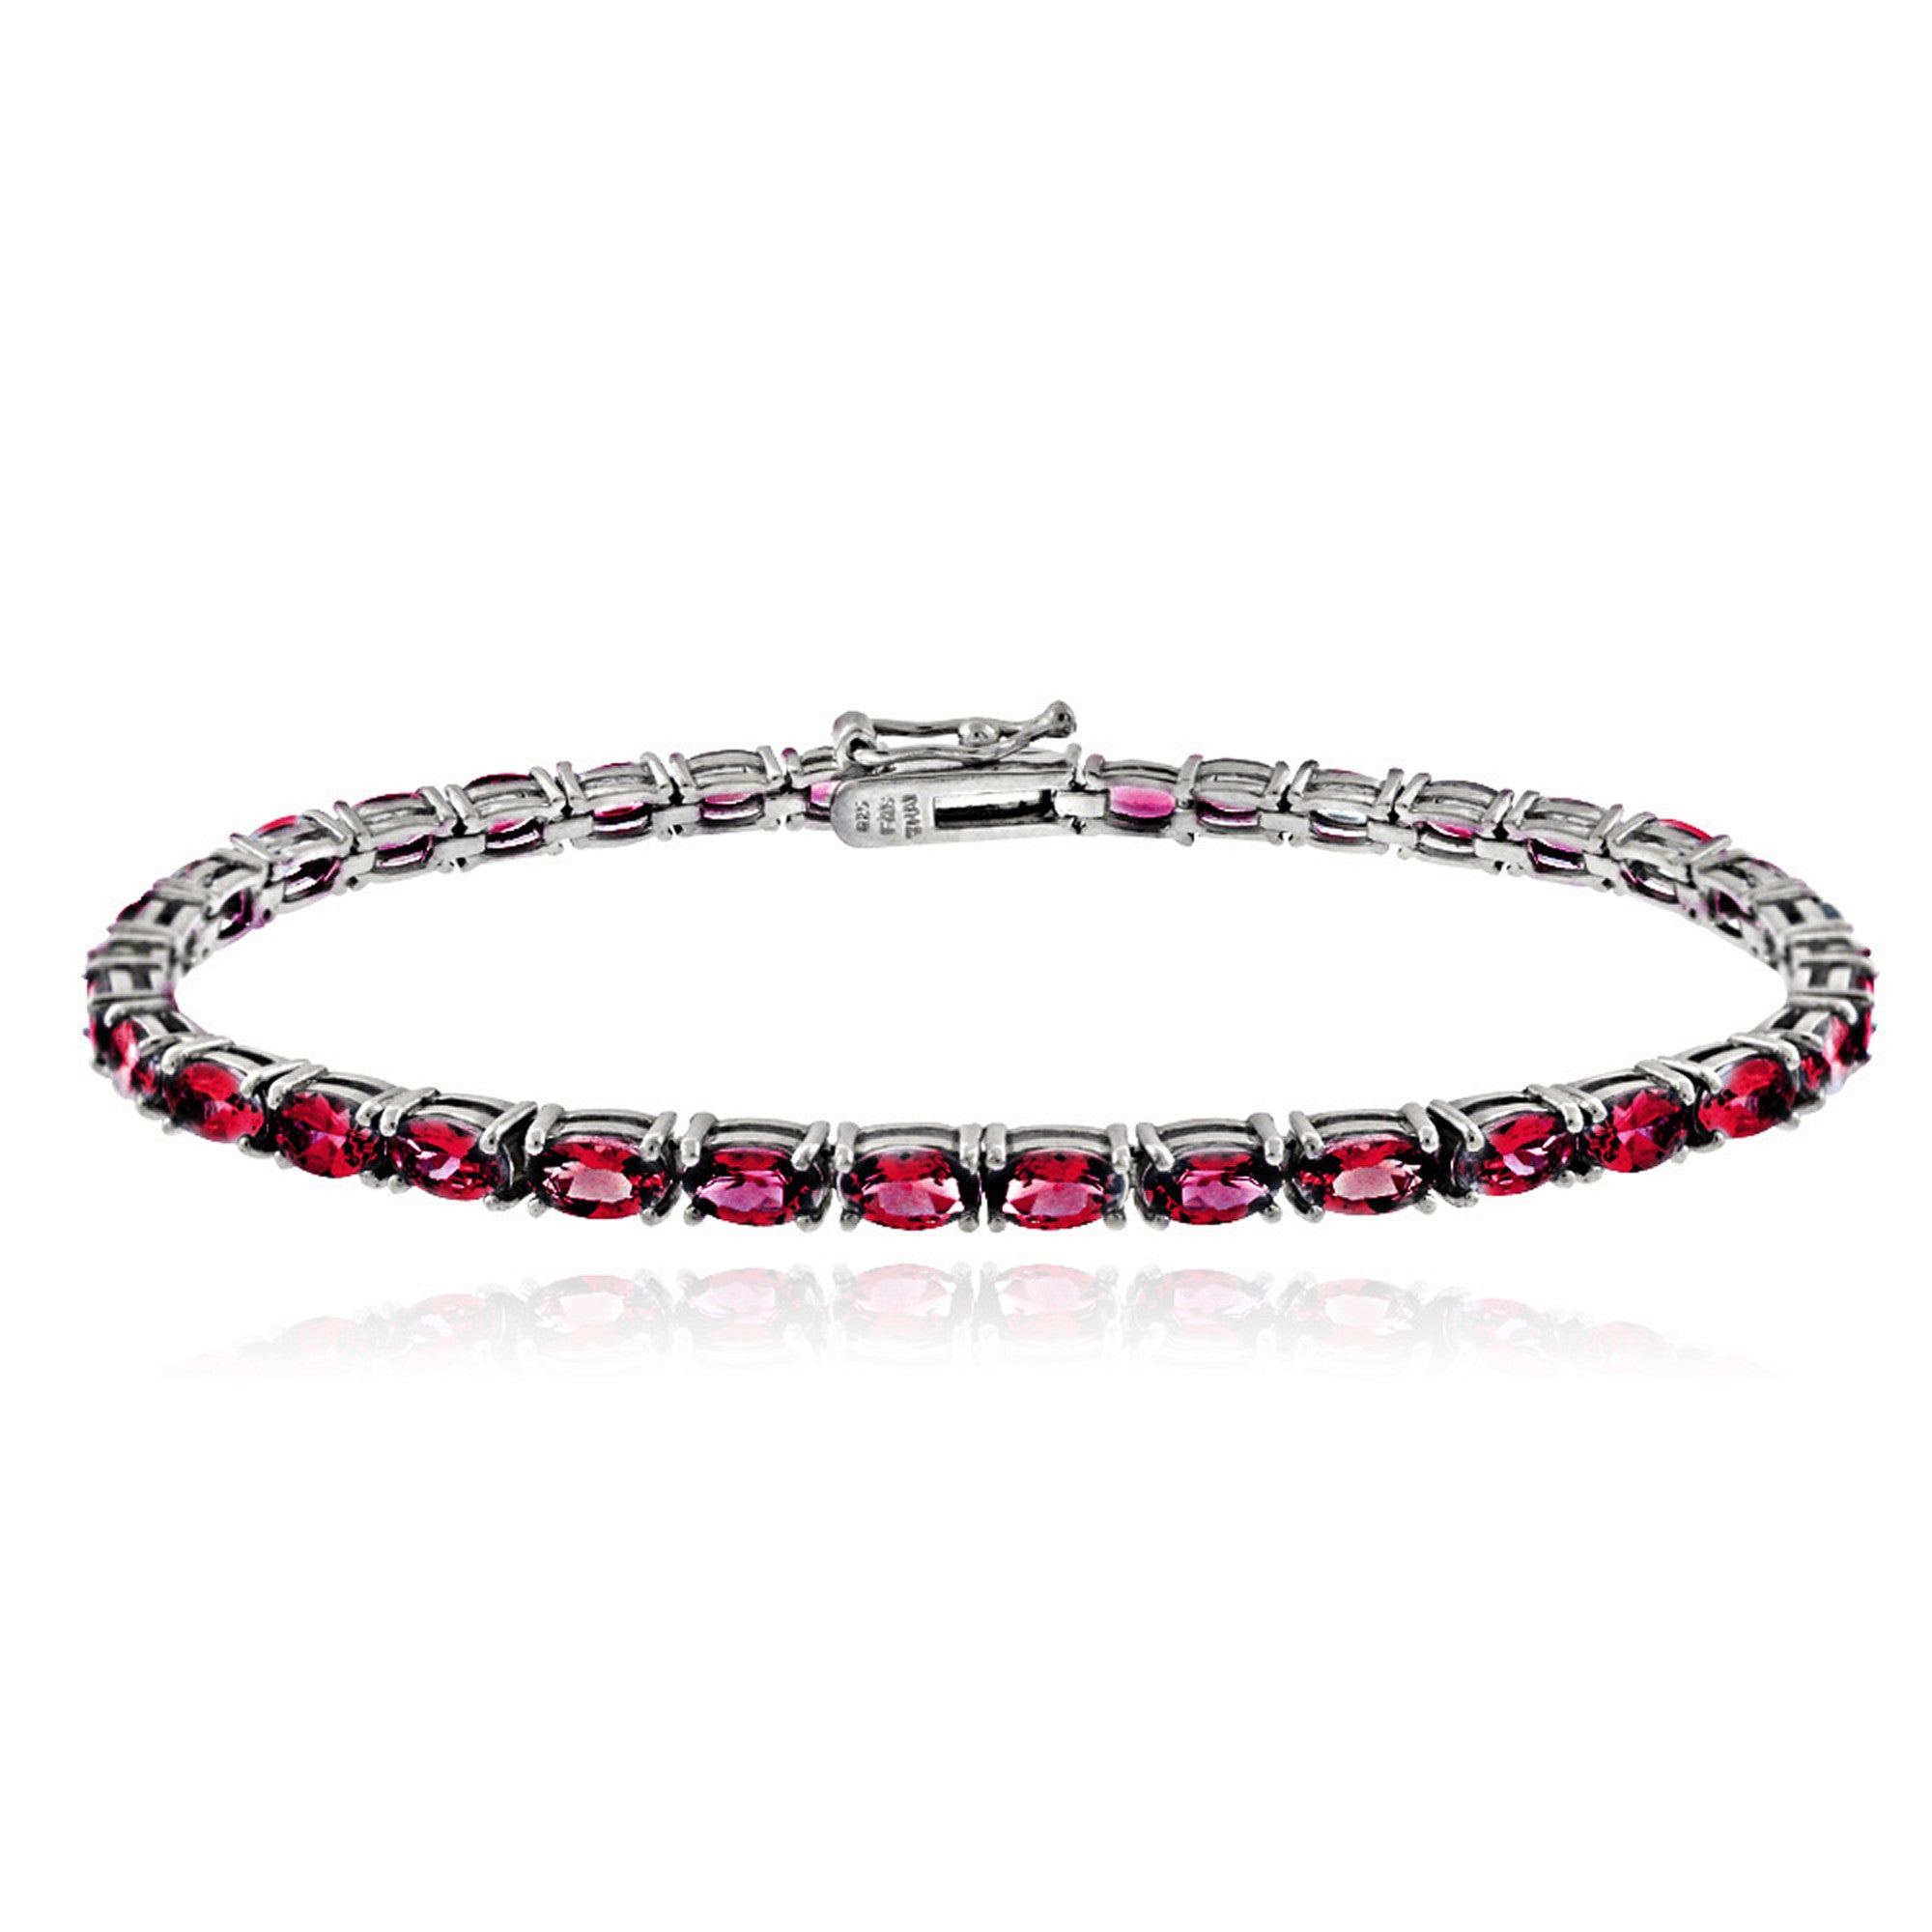 Birthstone Tennis Bracelet With CZ & Gem Accents in Sterling Silver - July Created Ruby